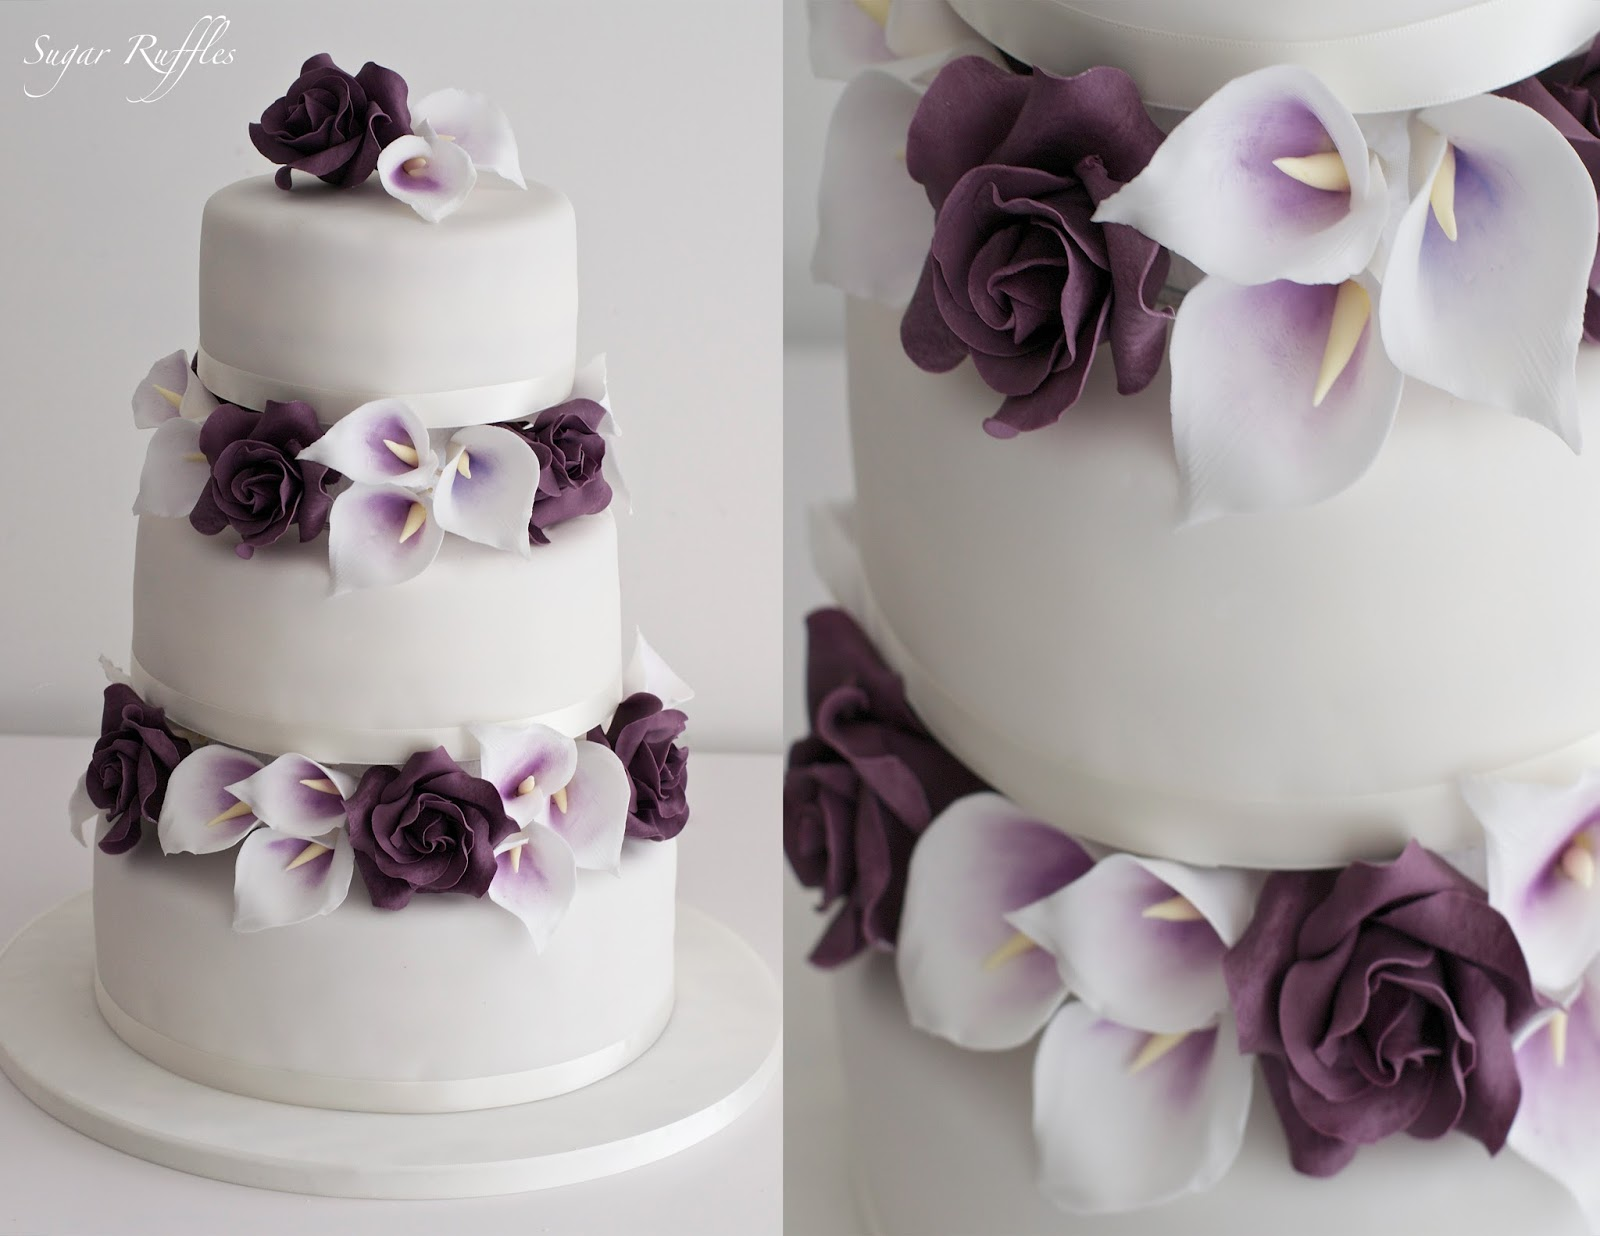 A 3 Tier Wedding Cake With Sugar Roses And Picasso Calla Lilies Between The Tiers